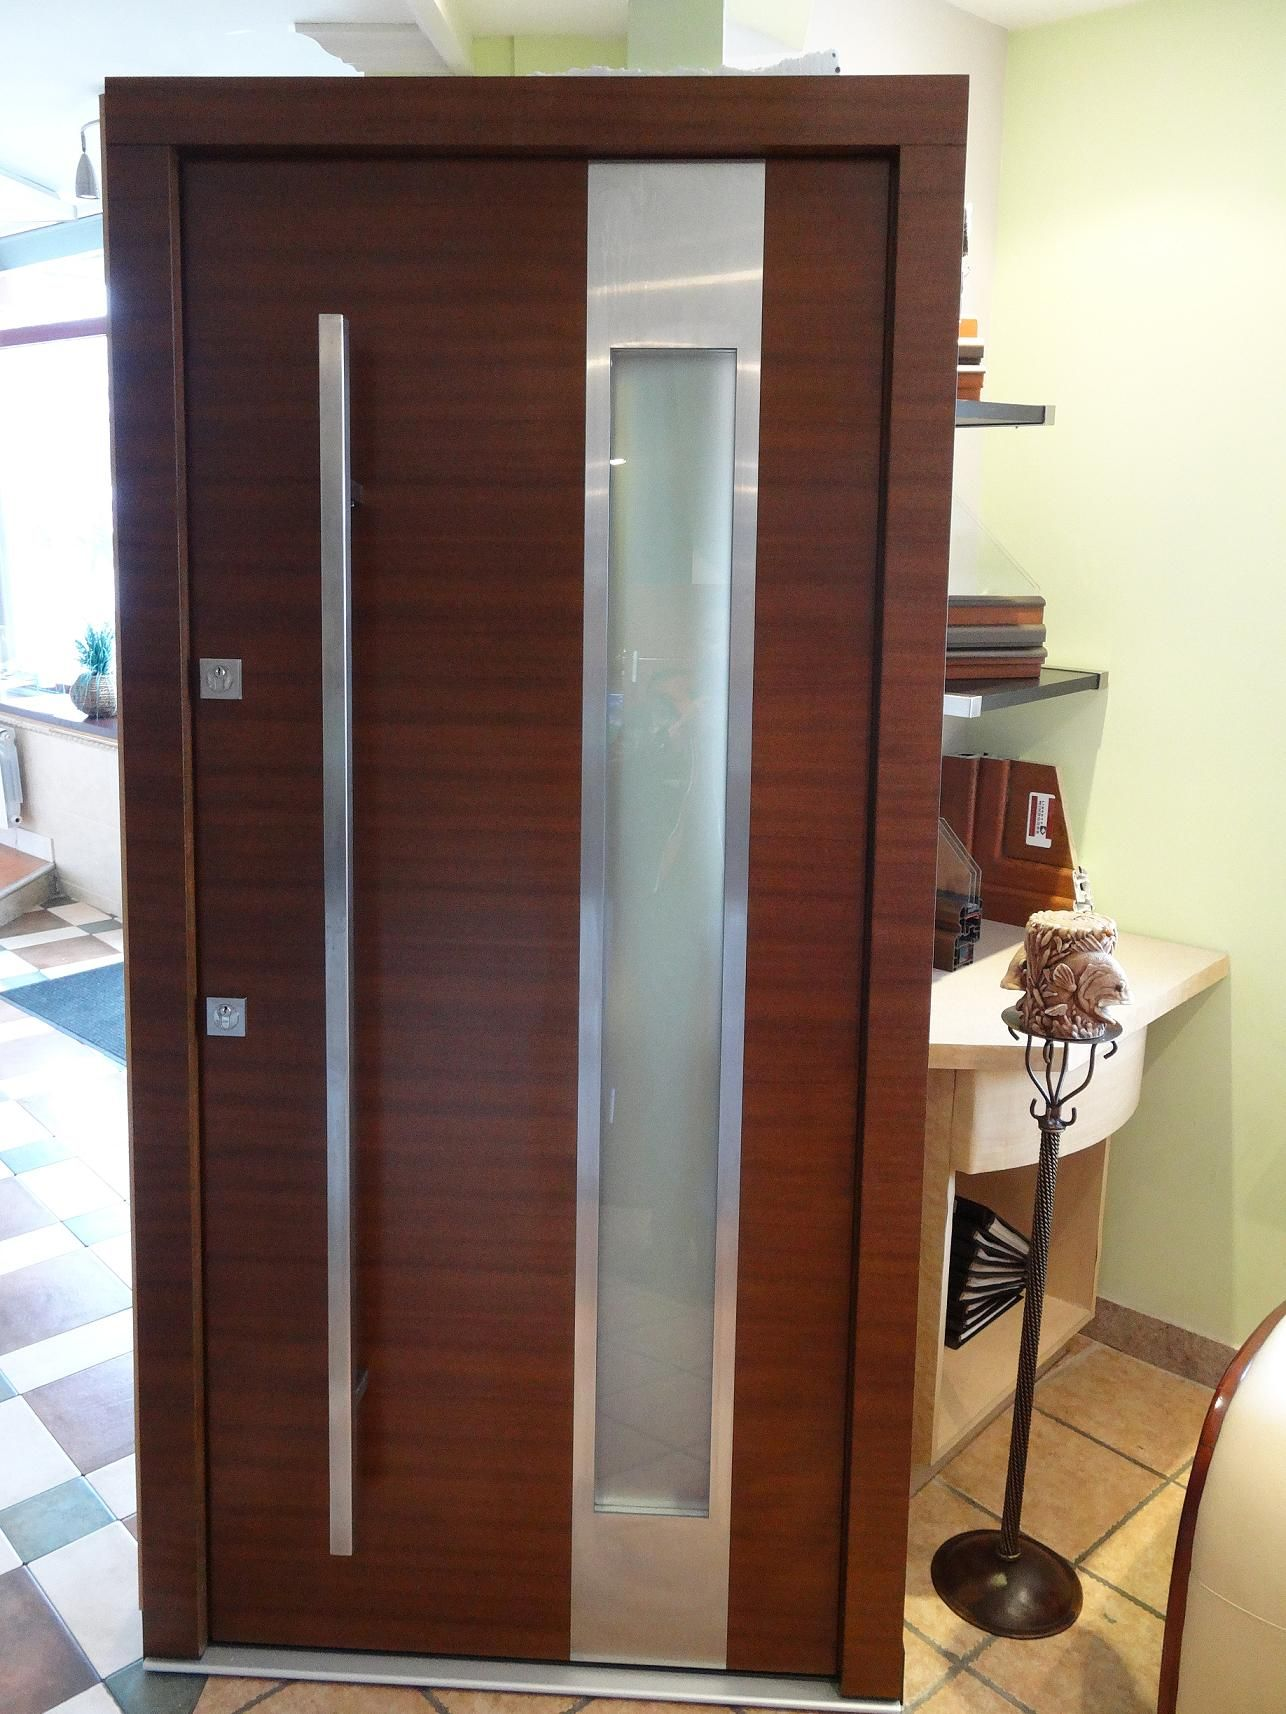 Model 001 Custom Meranti Wood Exterior Door | Contemporary Front ...